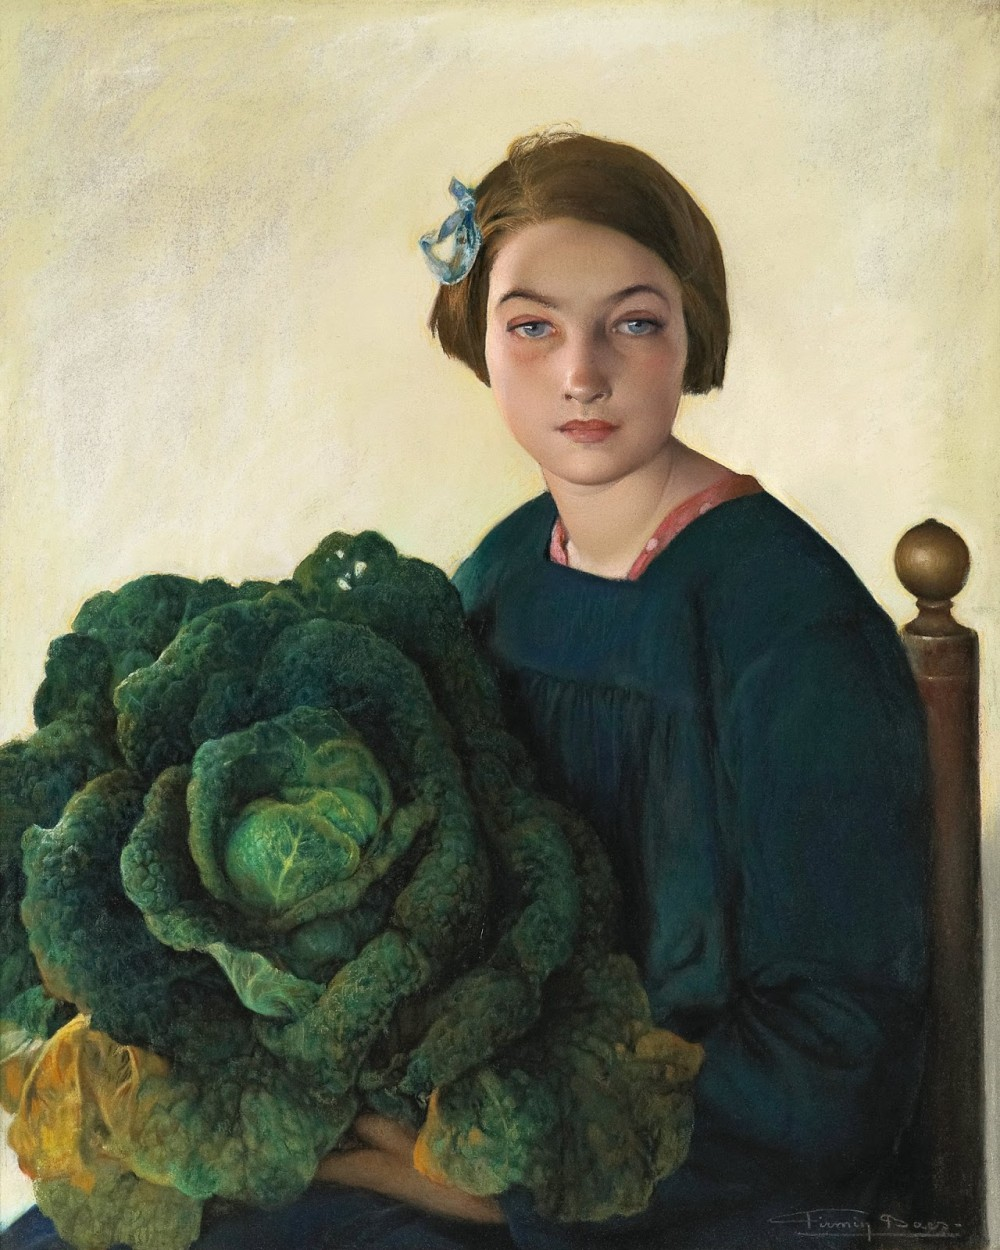 The Young Girl and the Cabbage by Firmin Baes via DailyArt app, your daily dose of art getdailyart.com